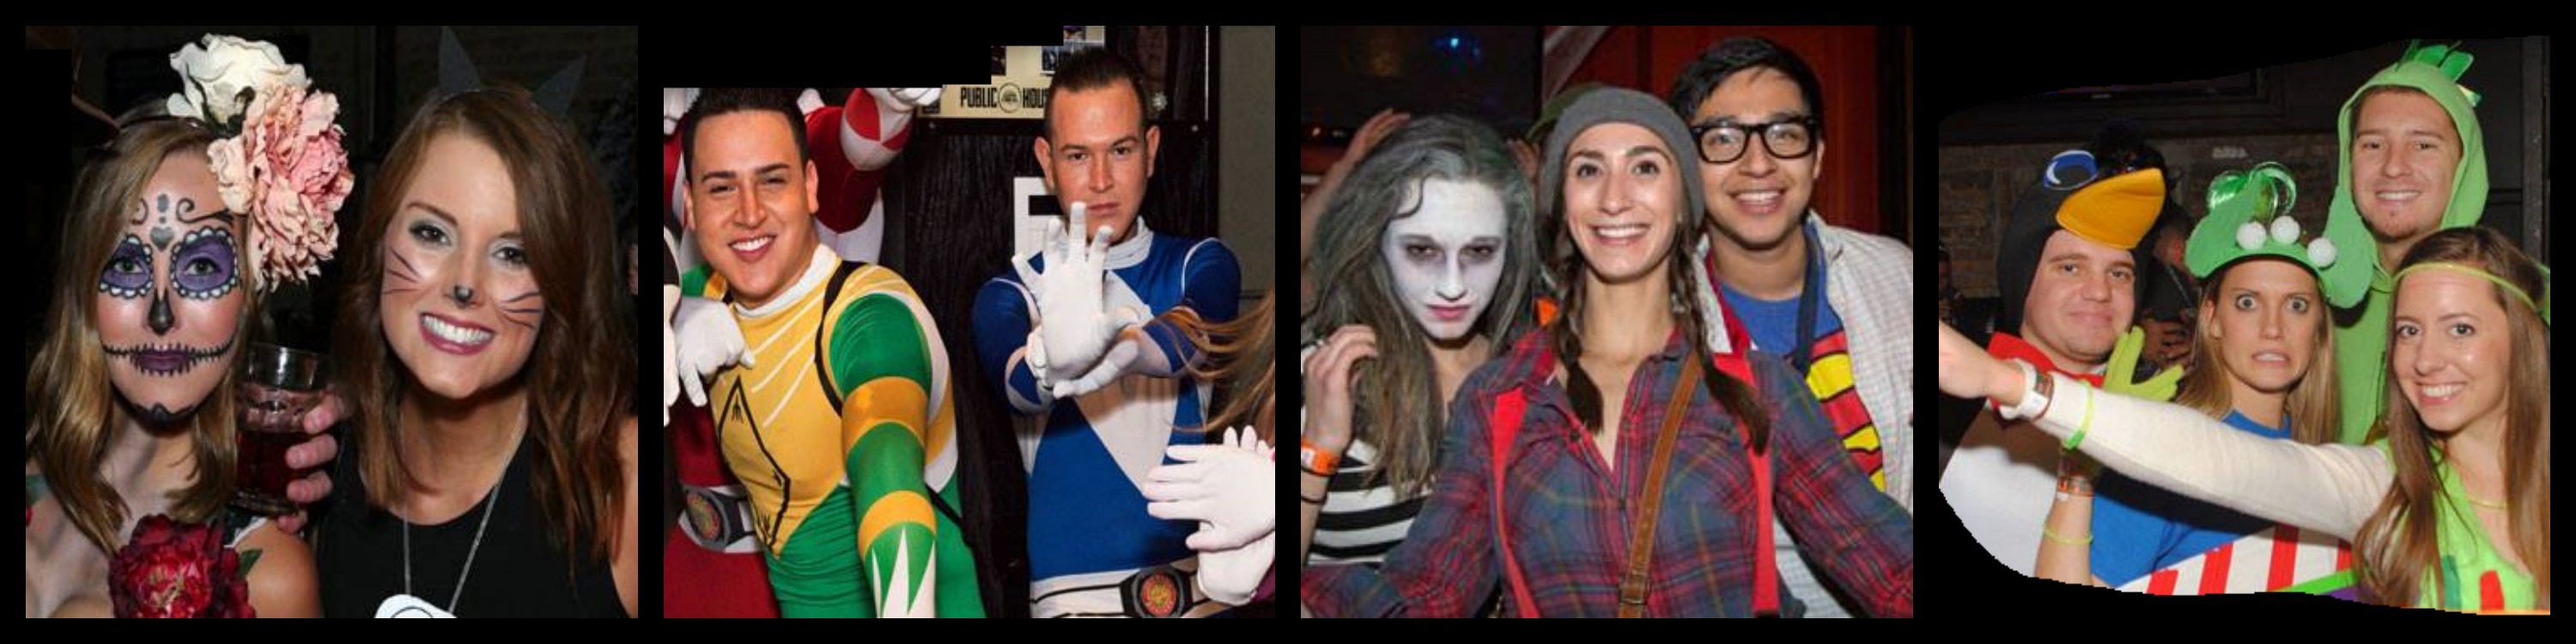 Halloween Booze Cruise Collage